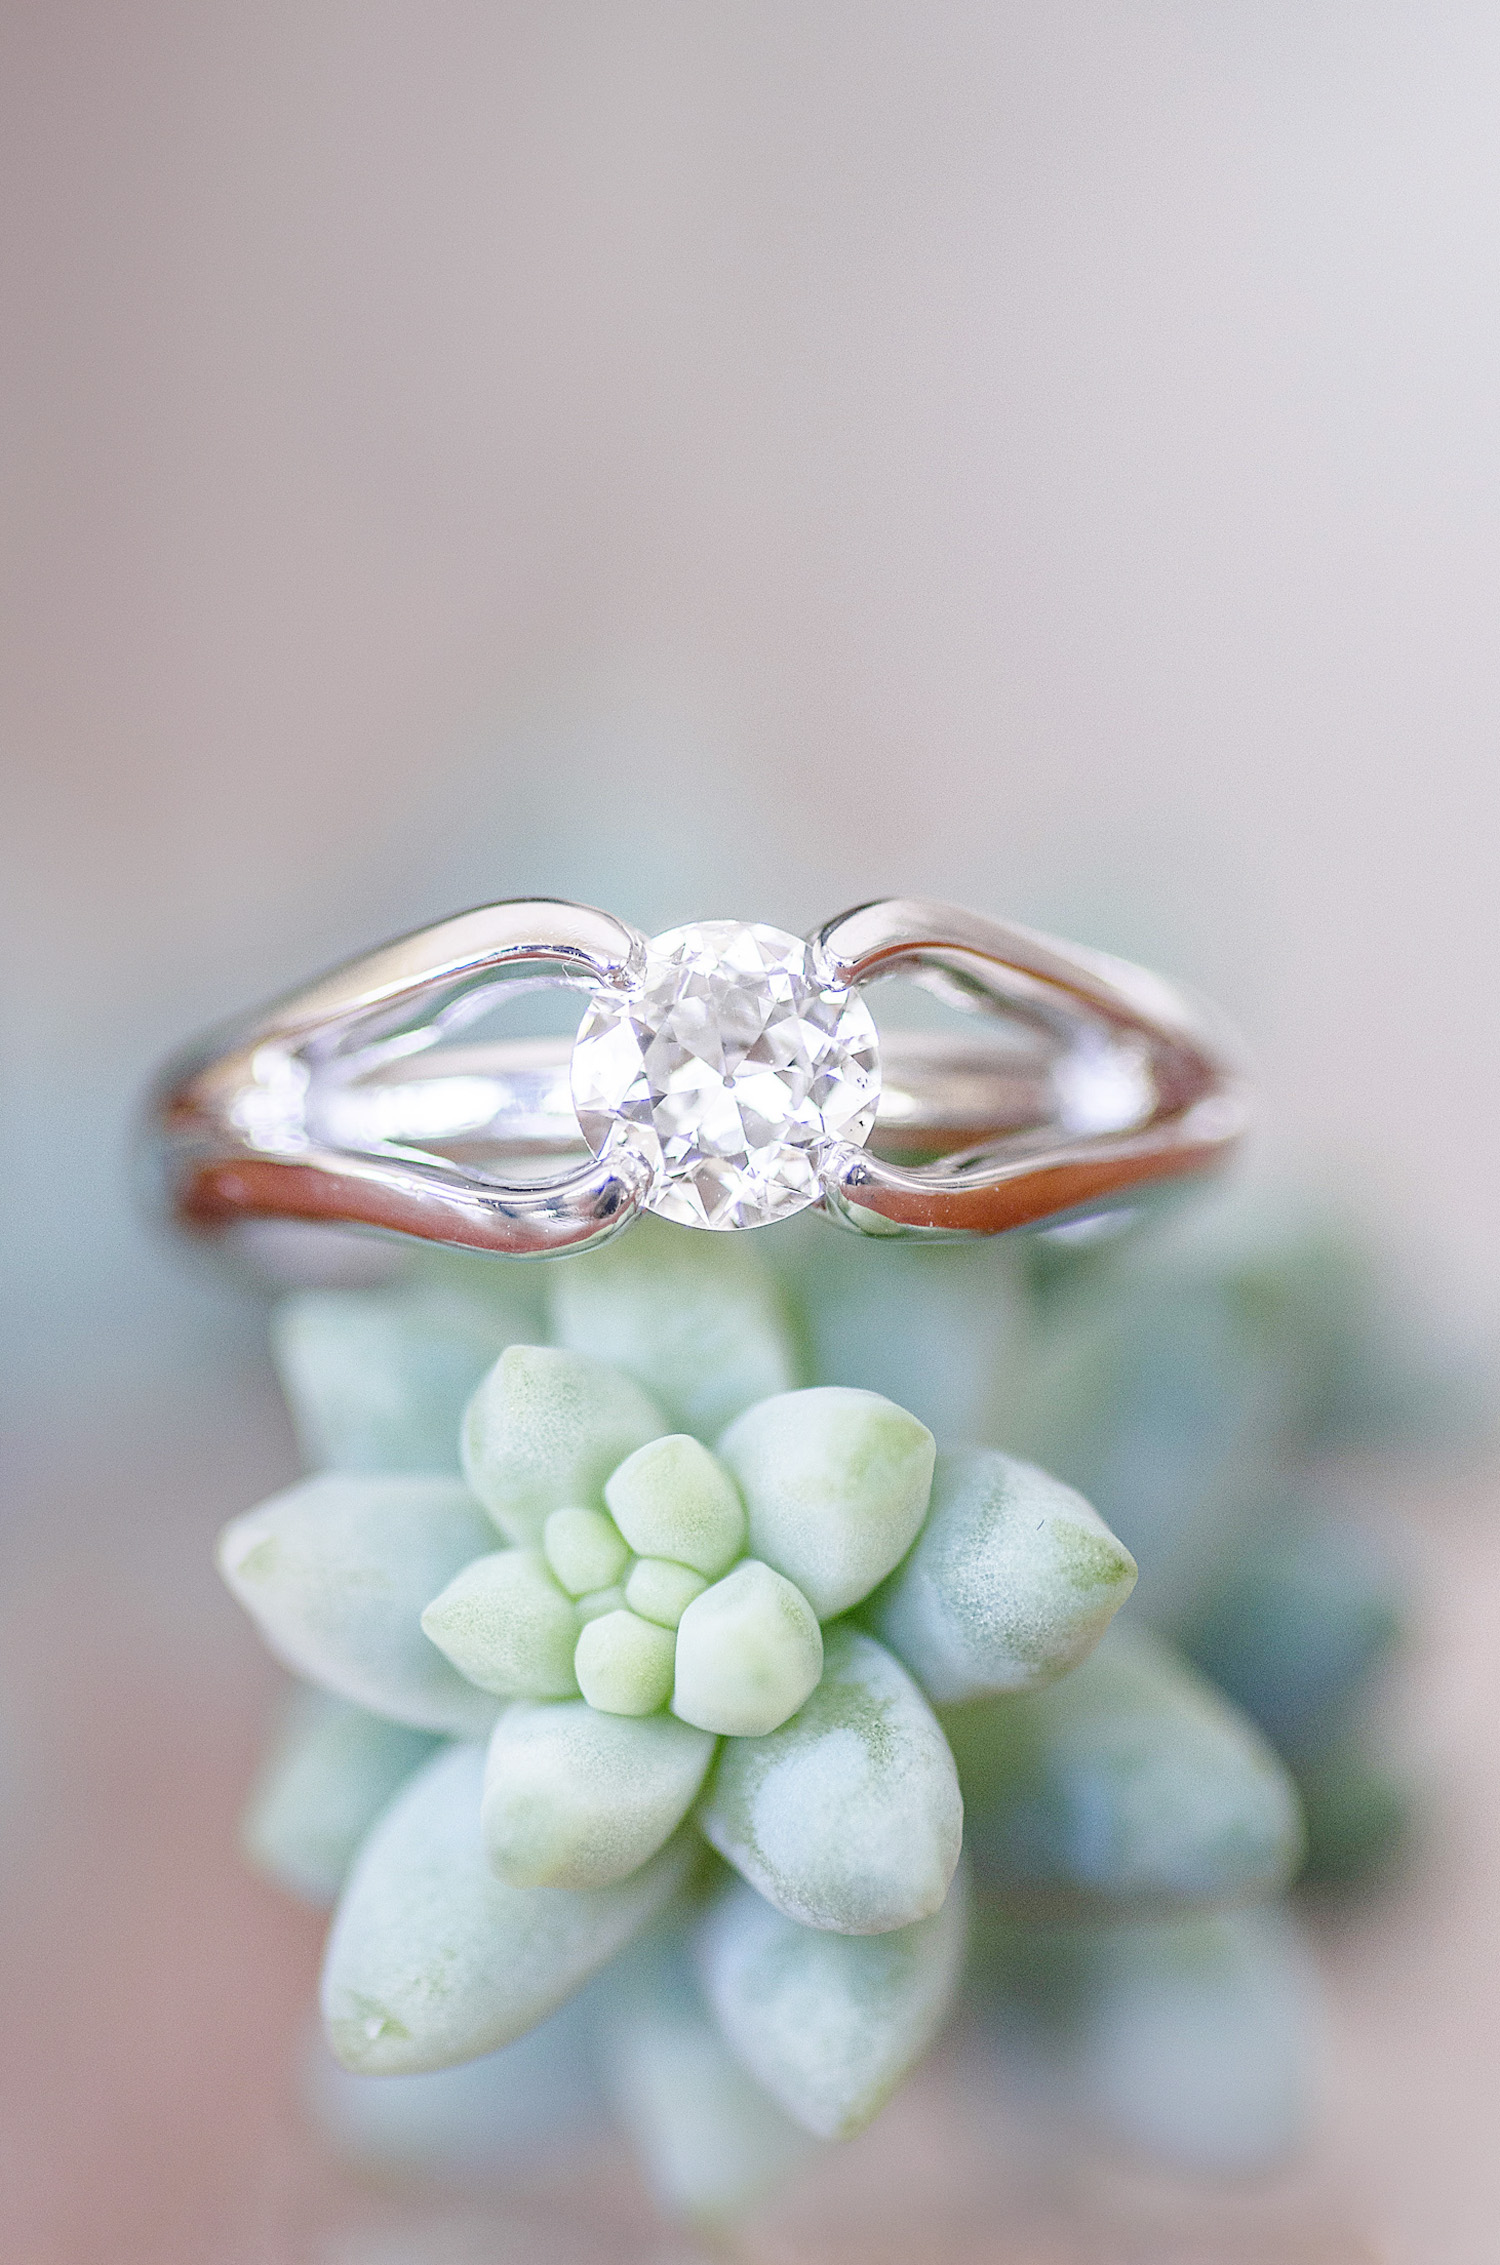 Diamond Engagement Ring with a Succulent captured by Let There Be Light Photography in Cochrane Alberta